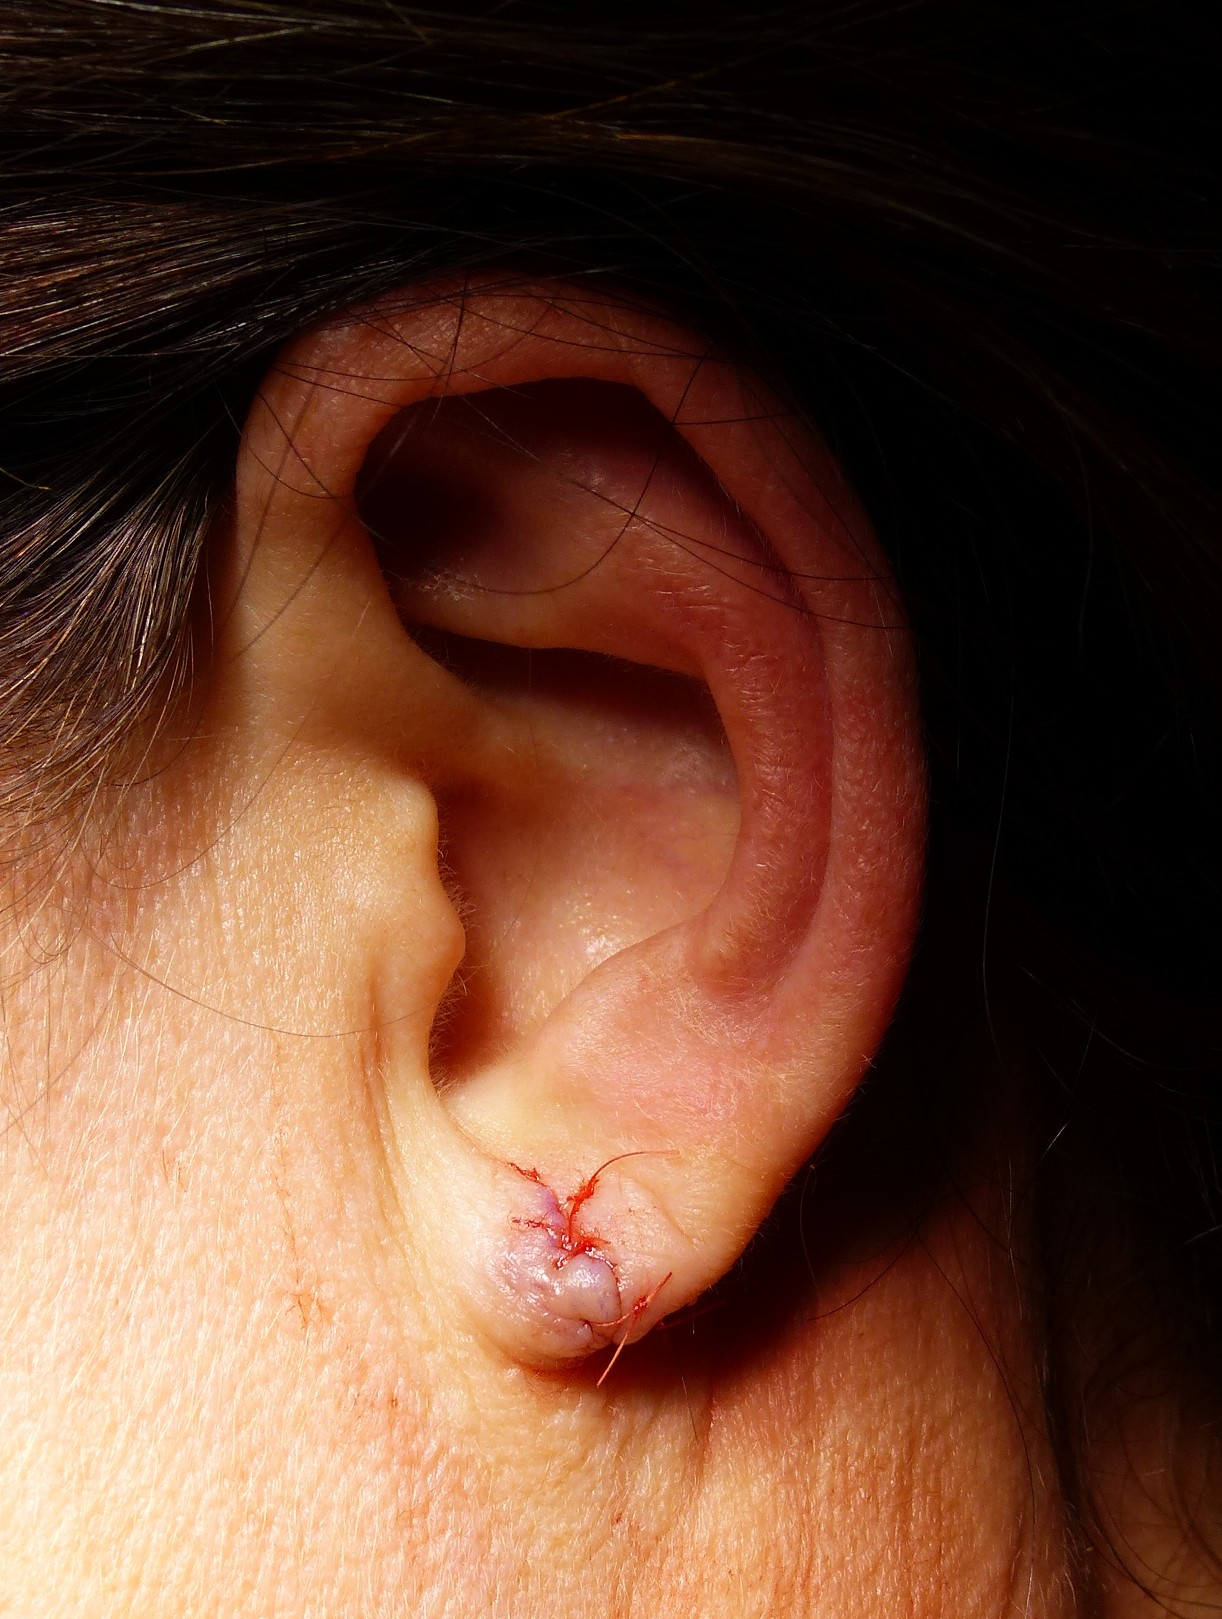 split earlobe Immediate result after repair with absorbable sutures